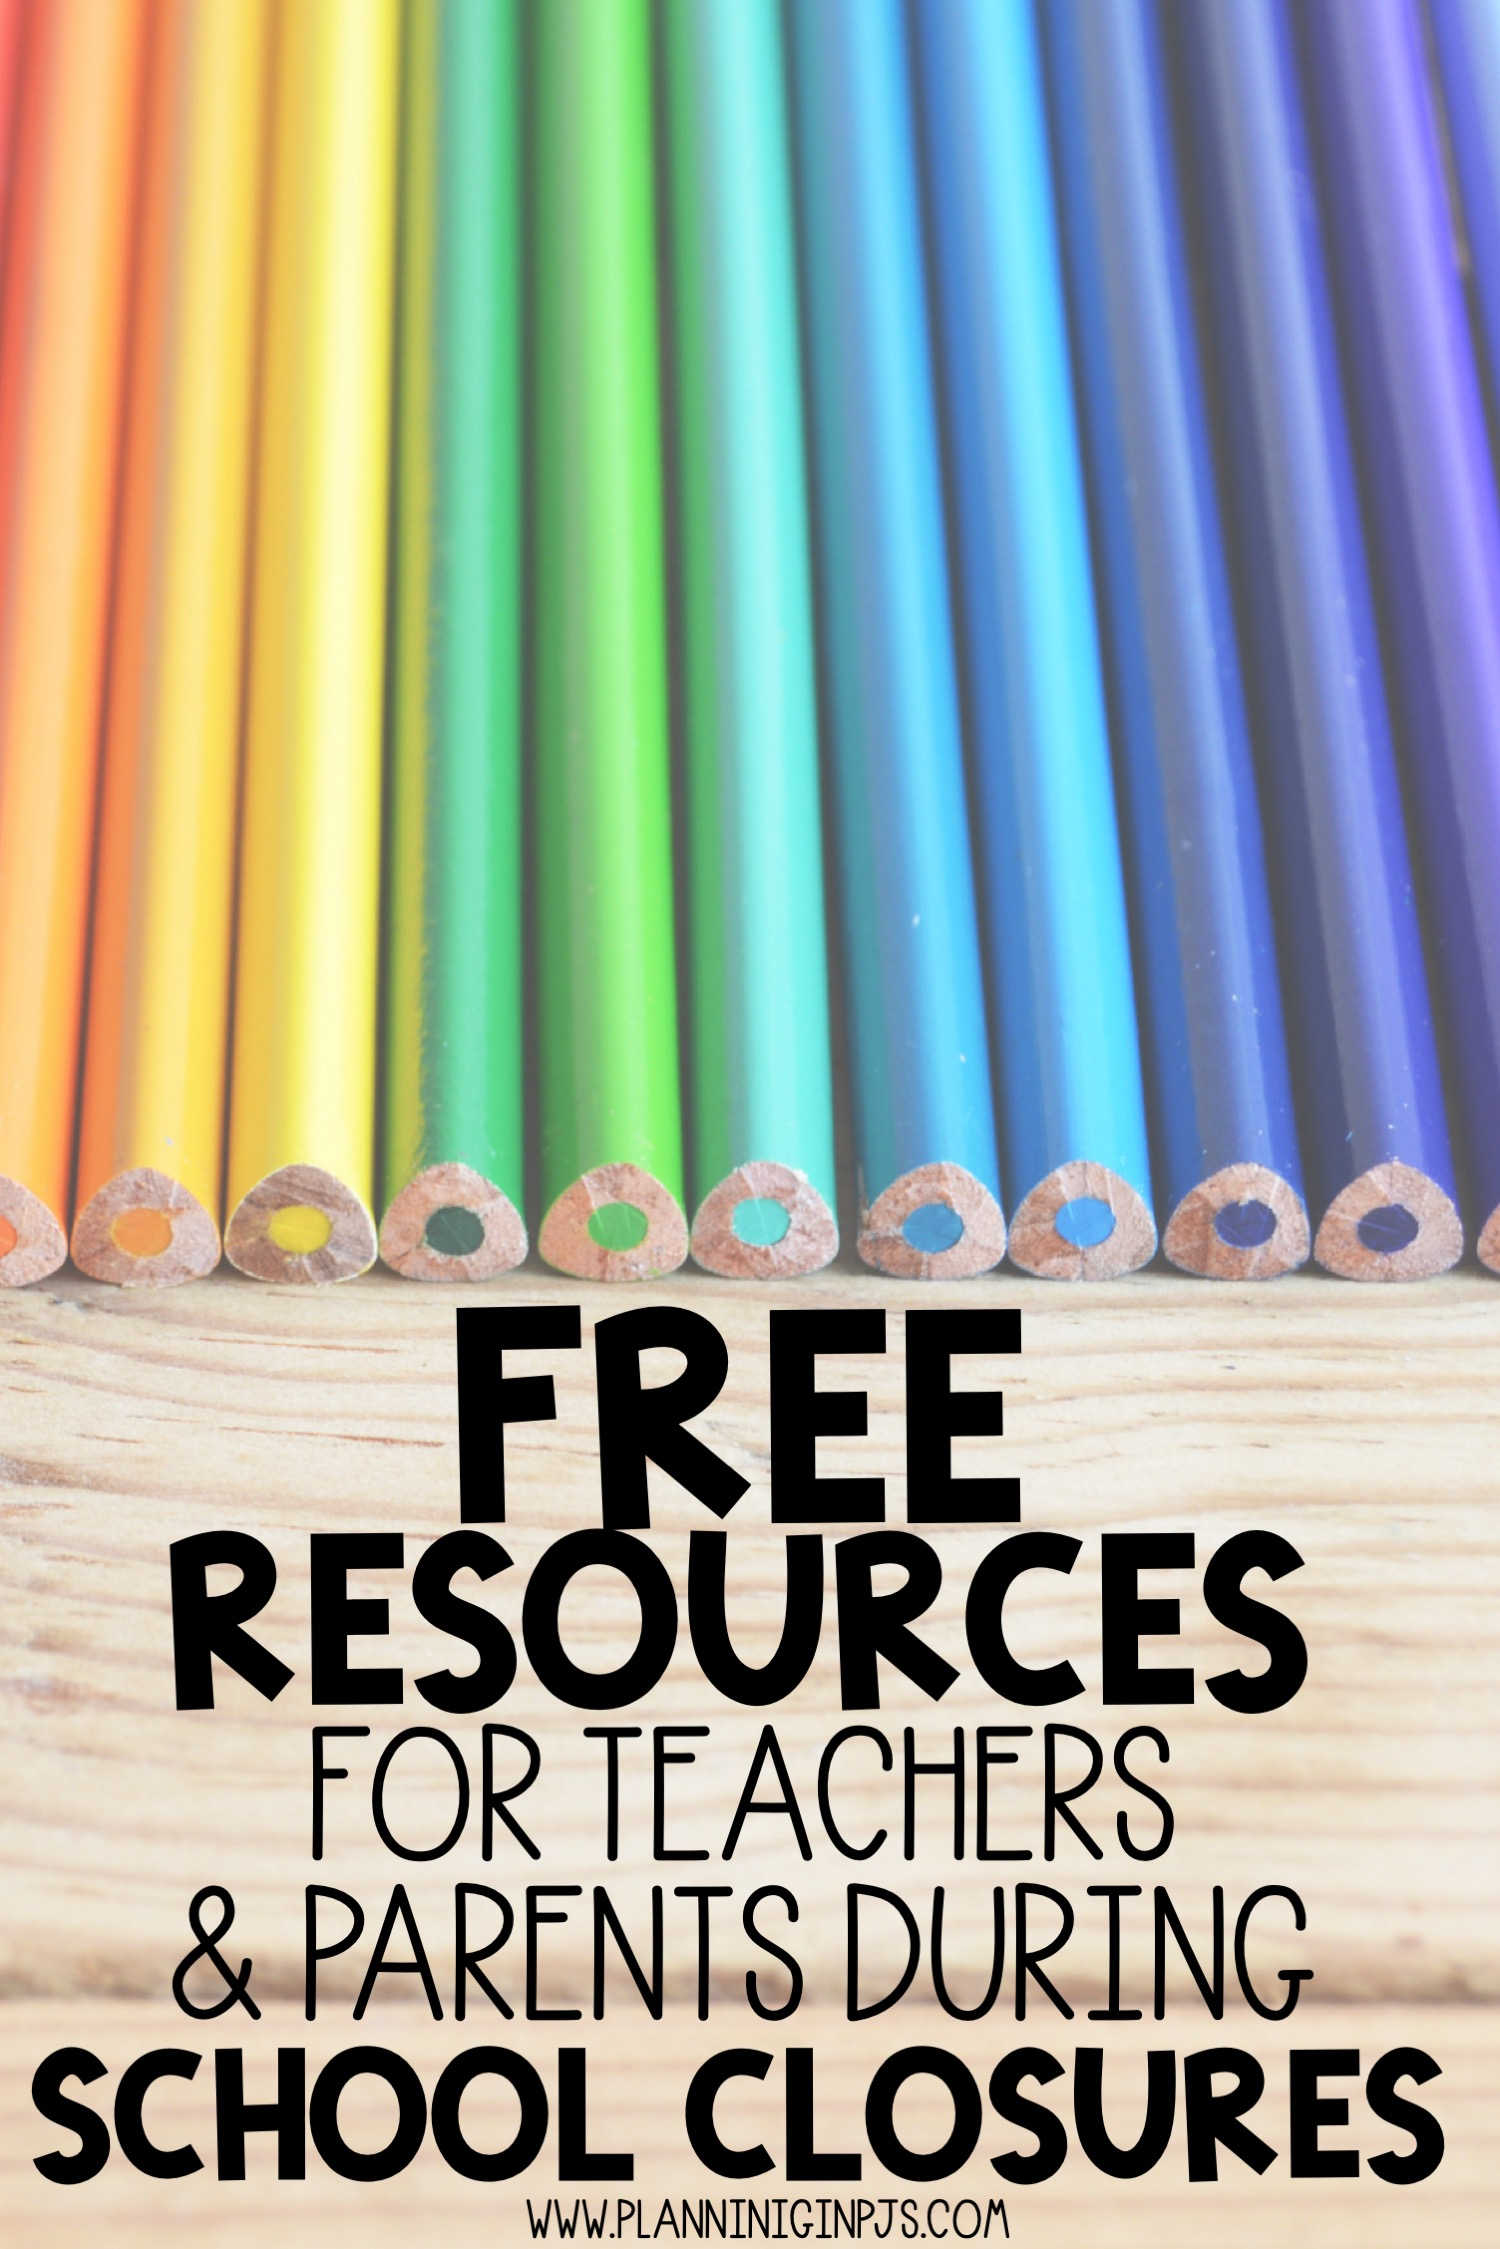 FREE Resources for Teachers and Parents During School Closures